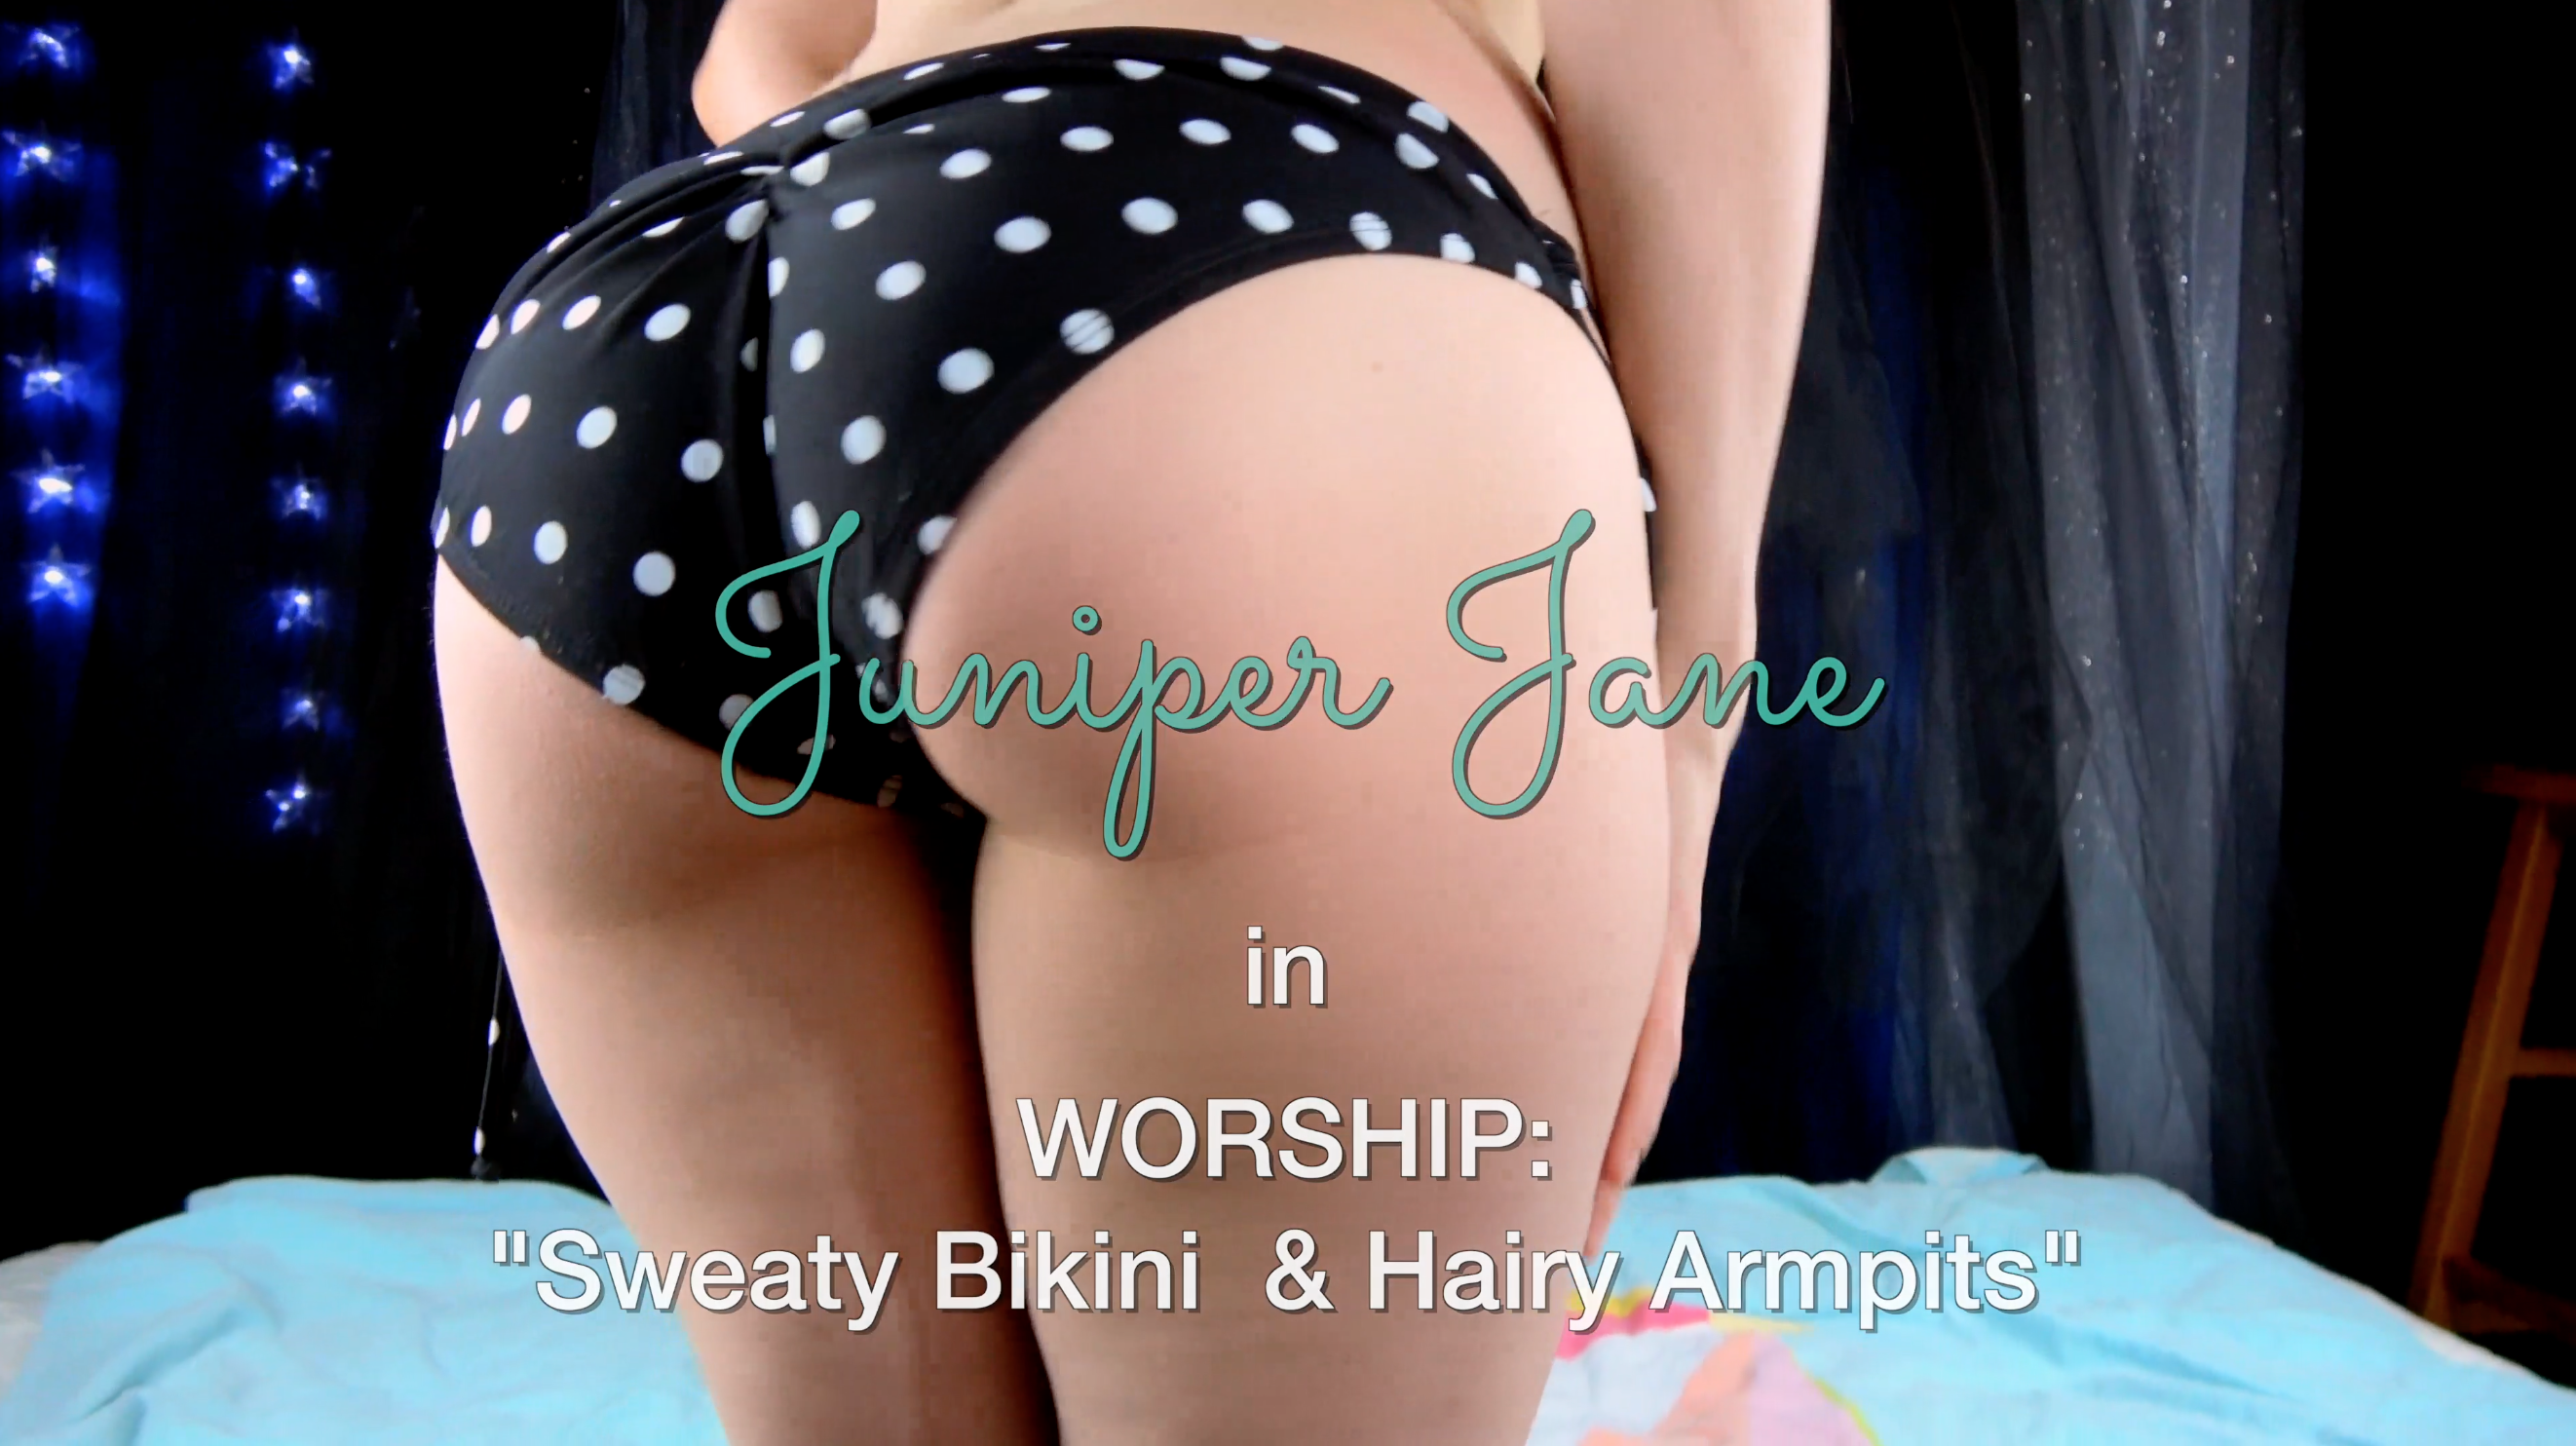 Juniper Jane Goddess Worship: Sweaty Bikini & Hairy Armpit Self-Worship